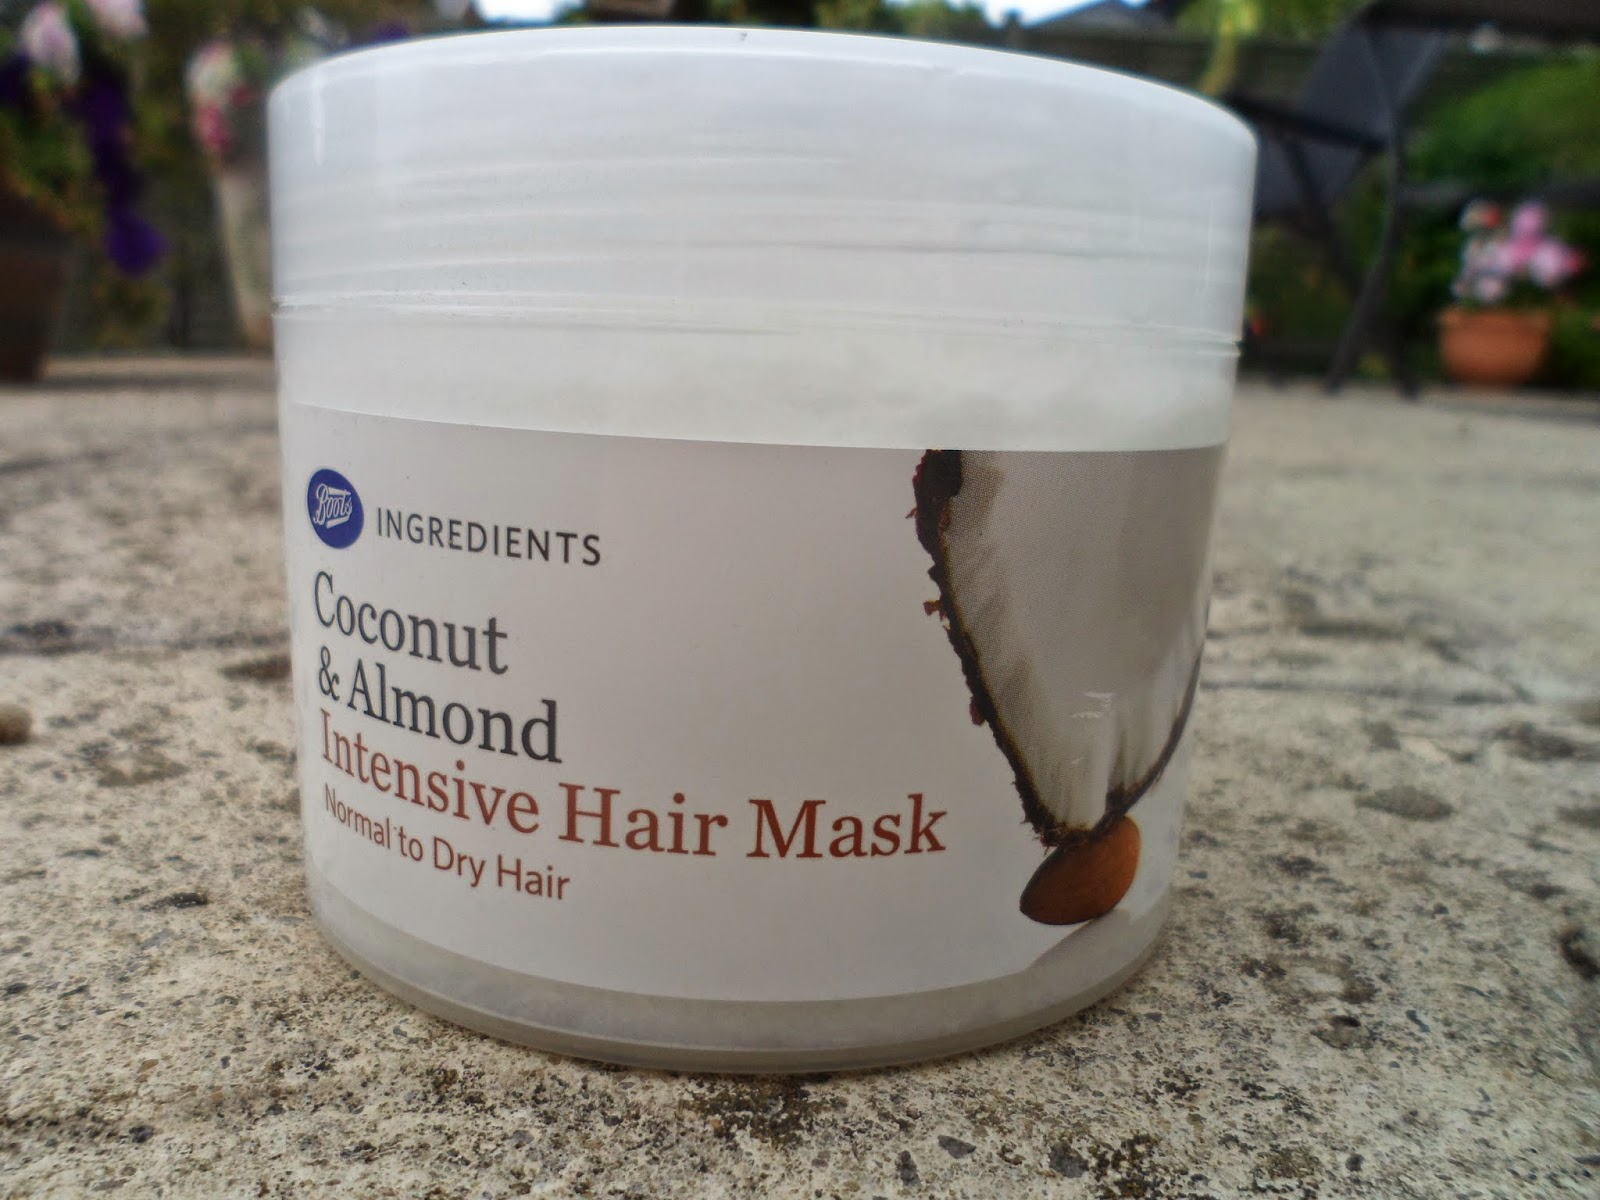 Boots Ingredients Coconut Amp Almond Intensive Hair Mask